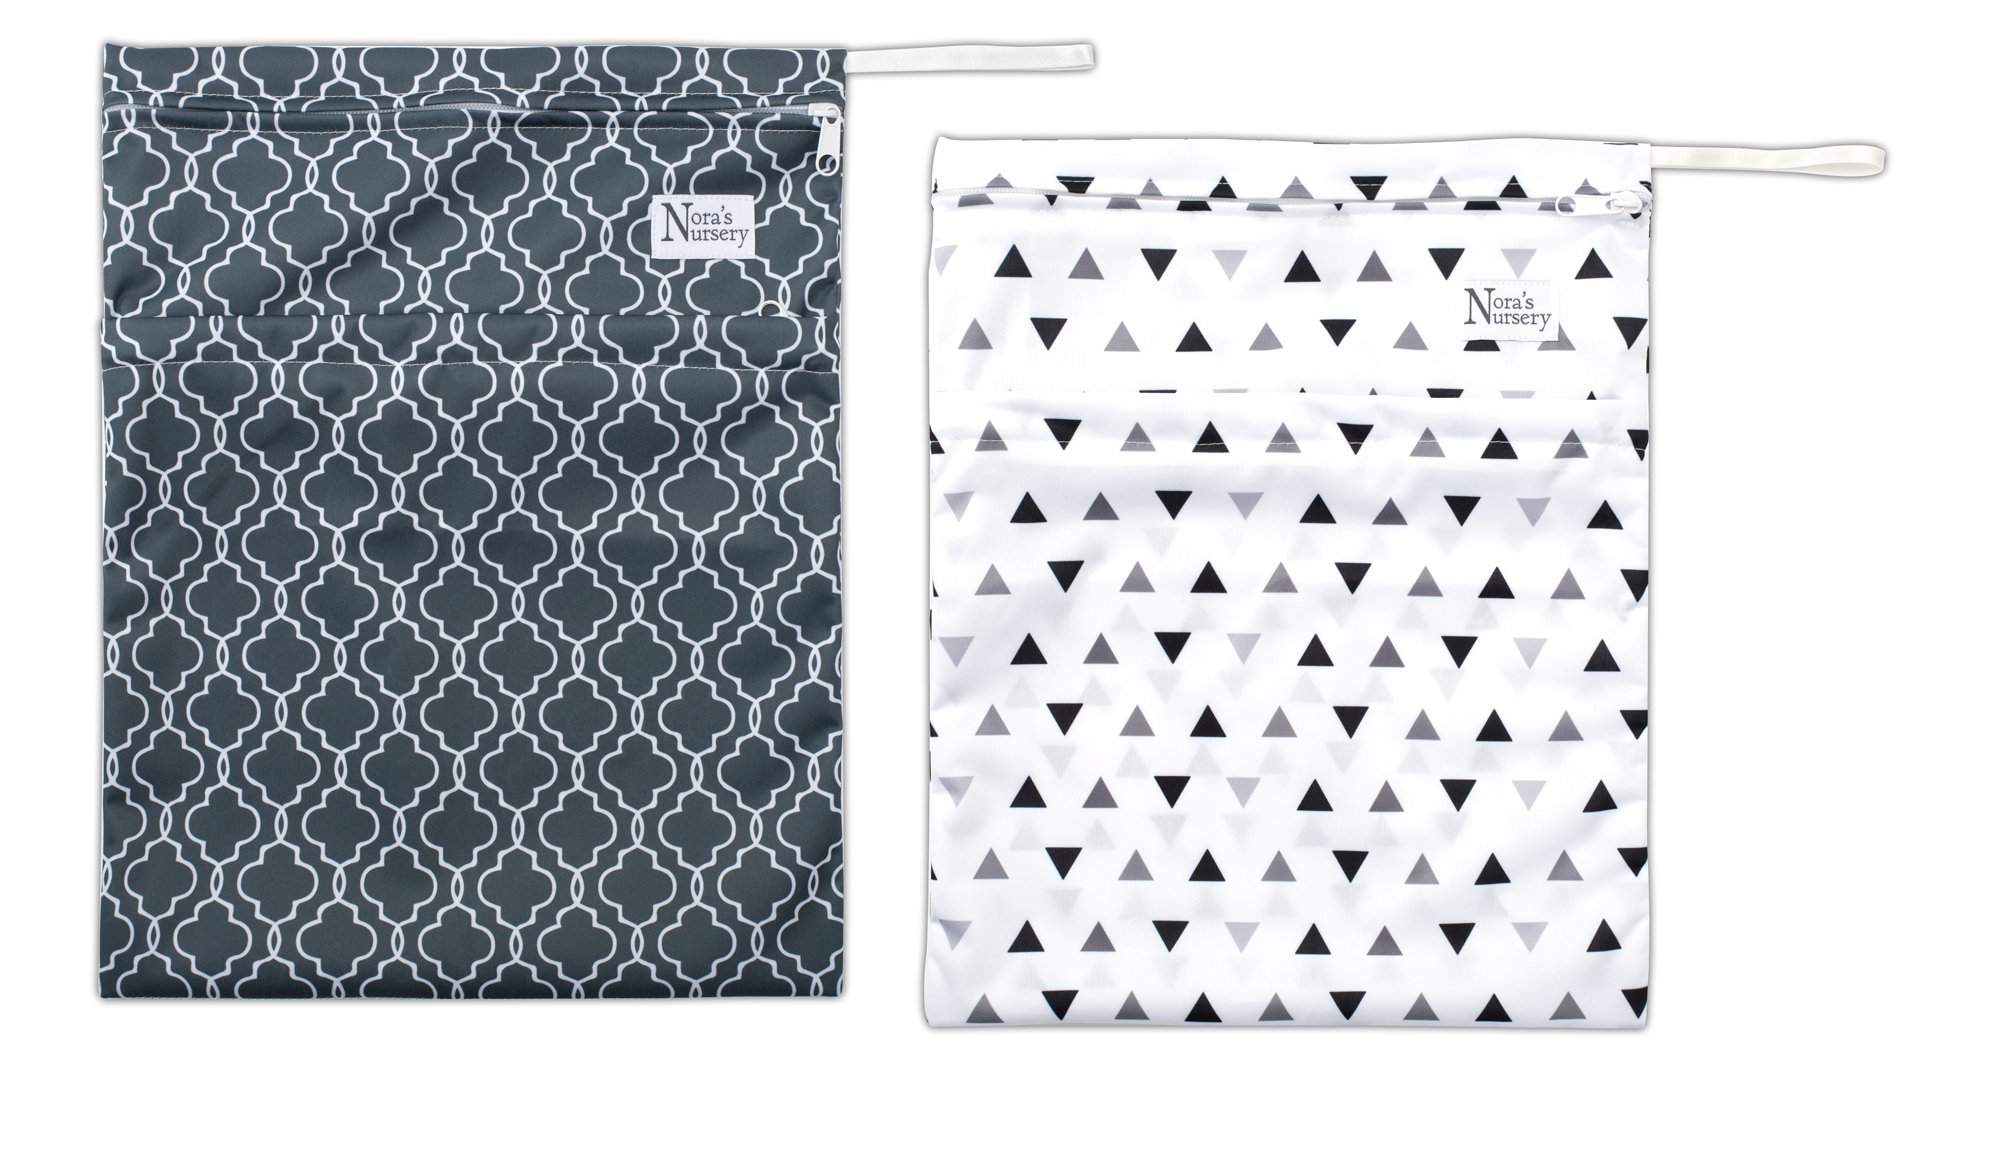 Unisex Wet Bags for Baby Cloth Diapers and Inserts (2 Pack) by Nora's Nursery